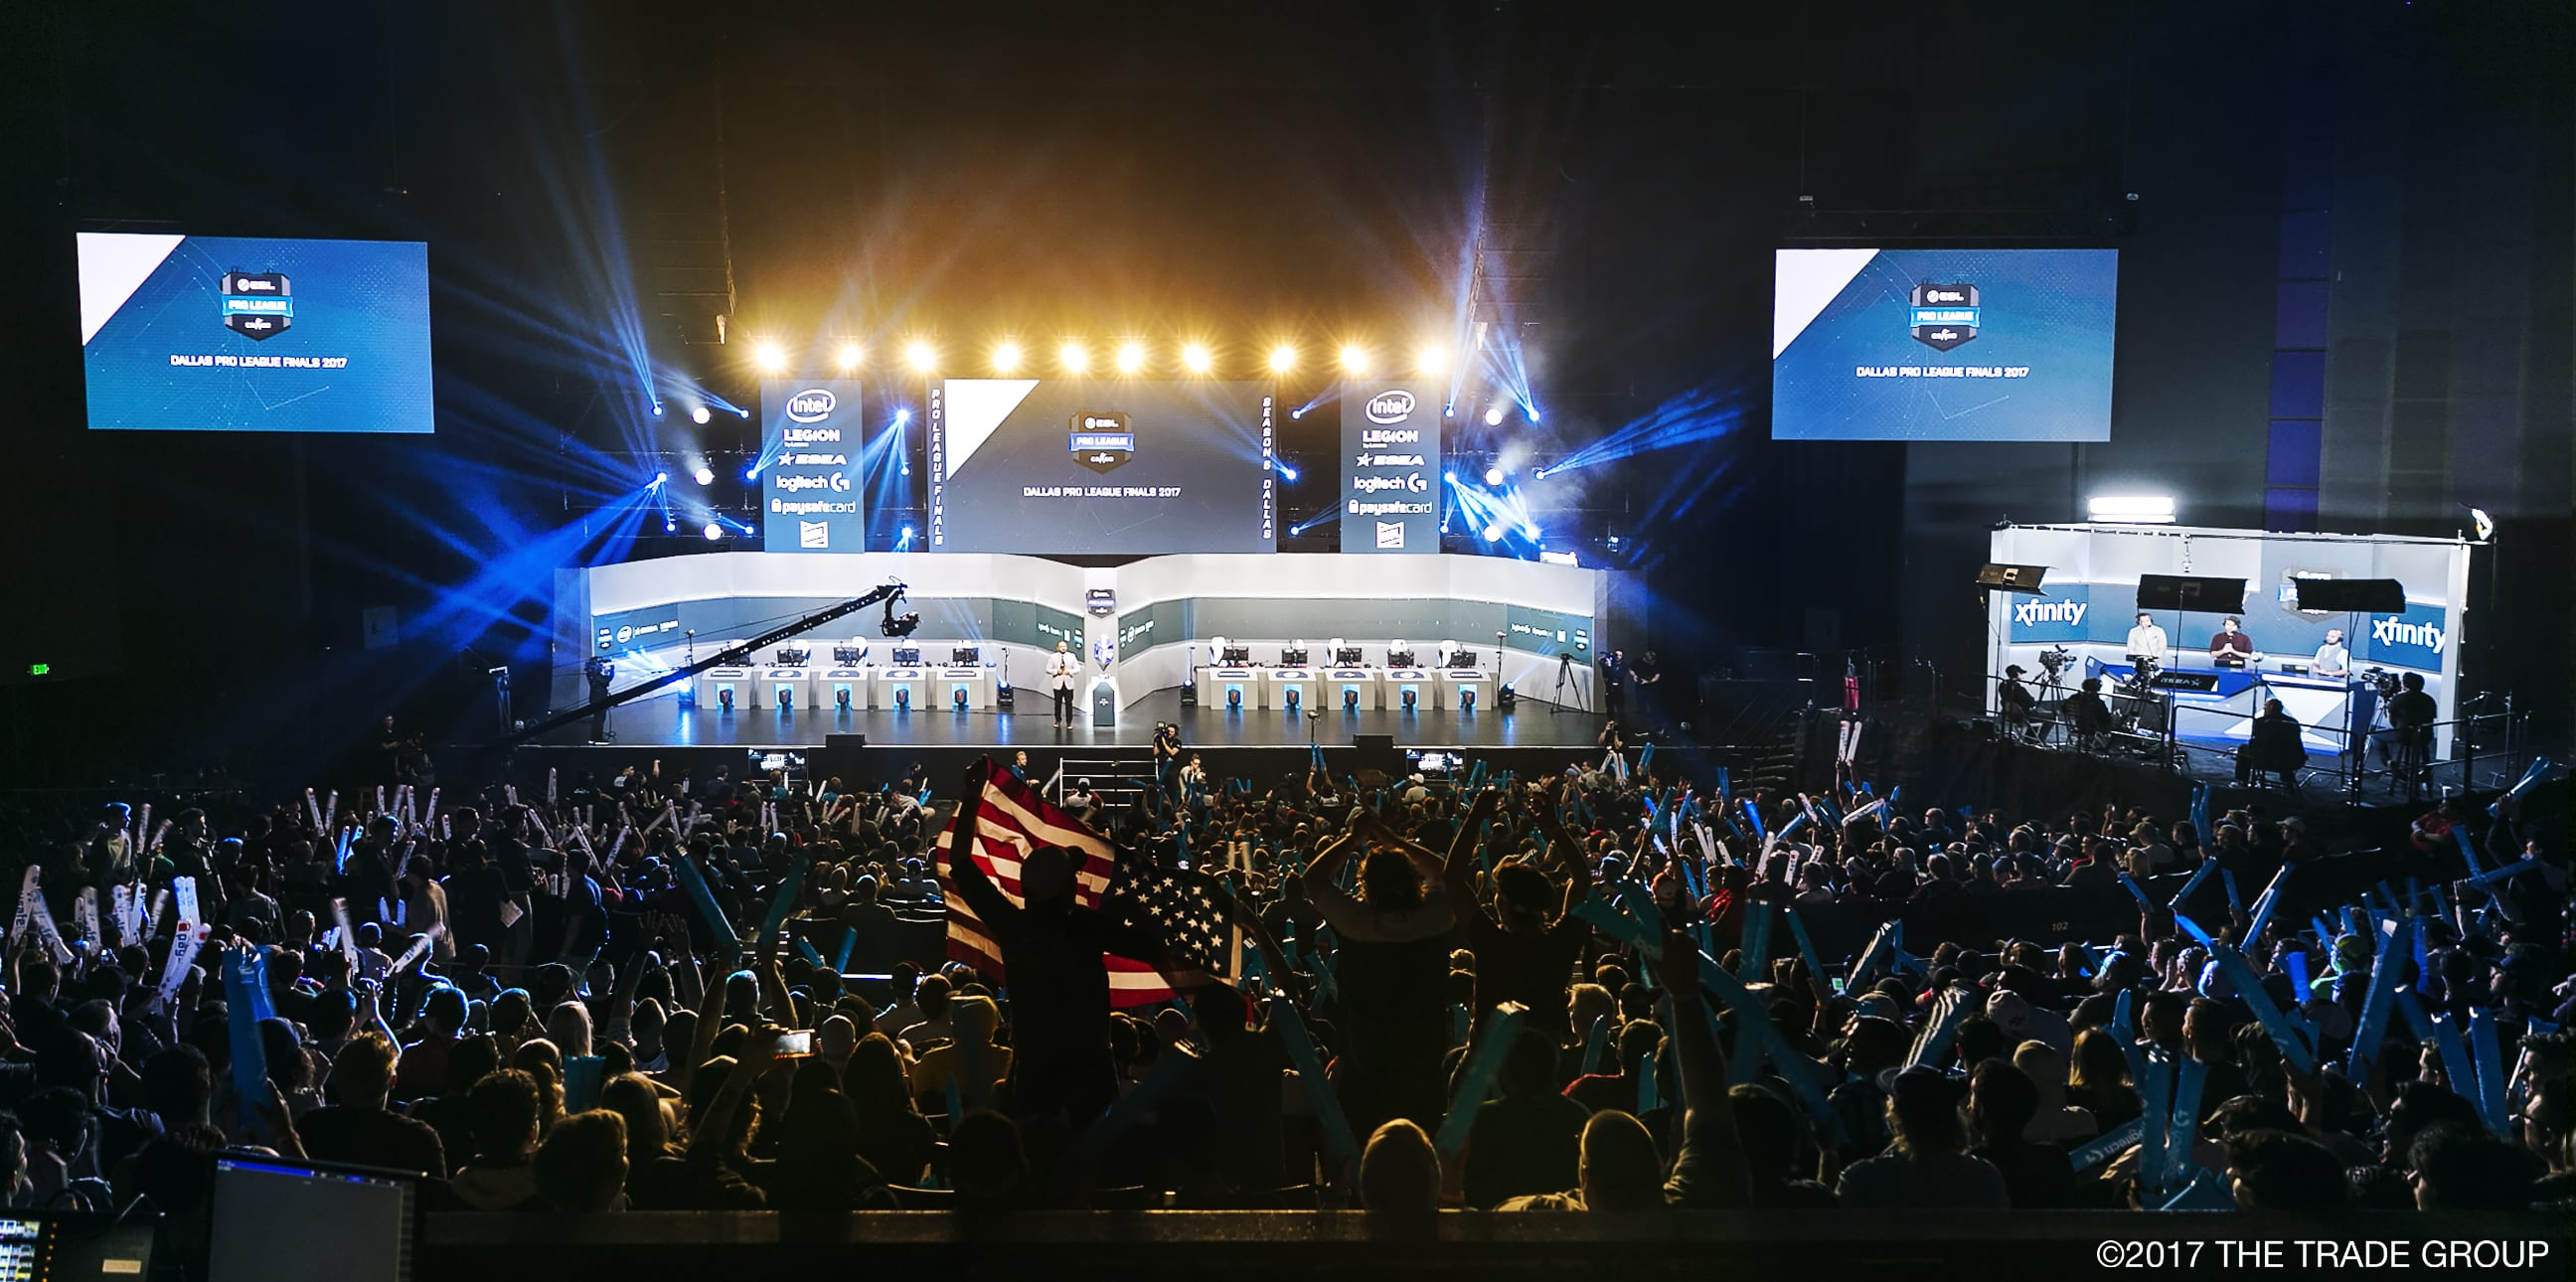 ESL Pro League CSGO tournament